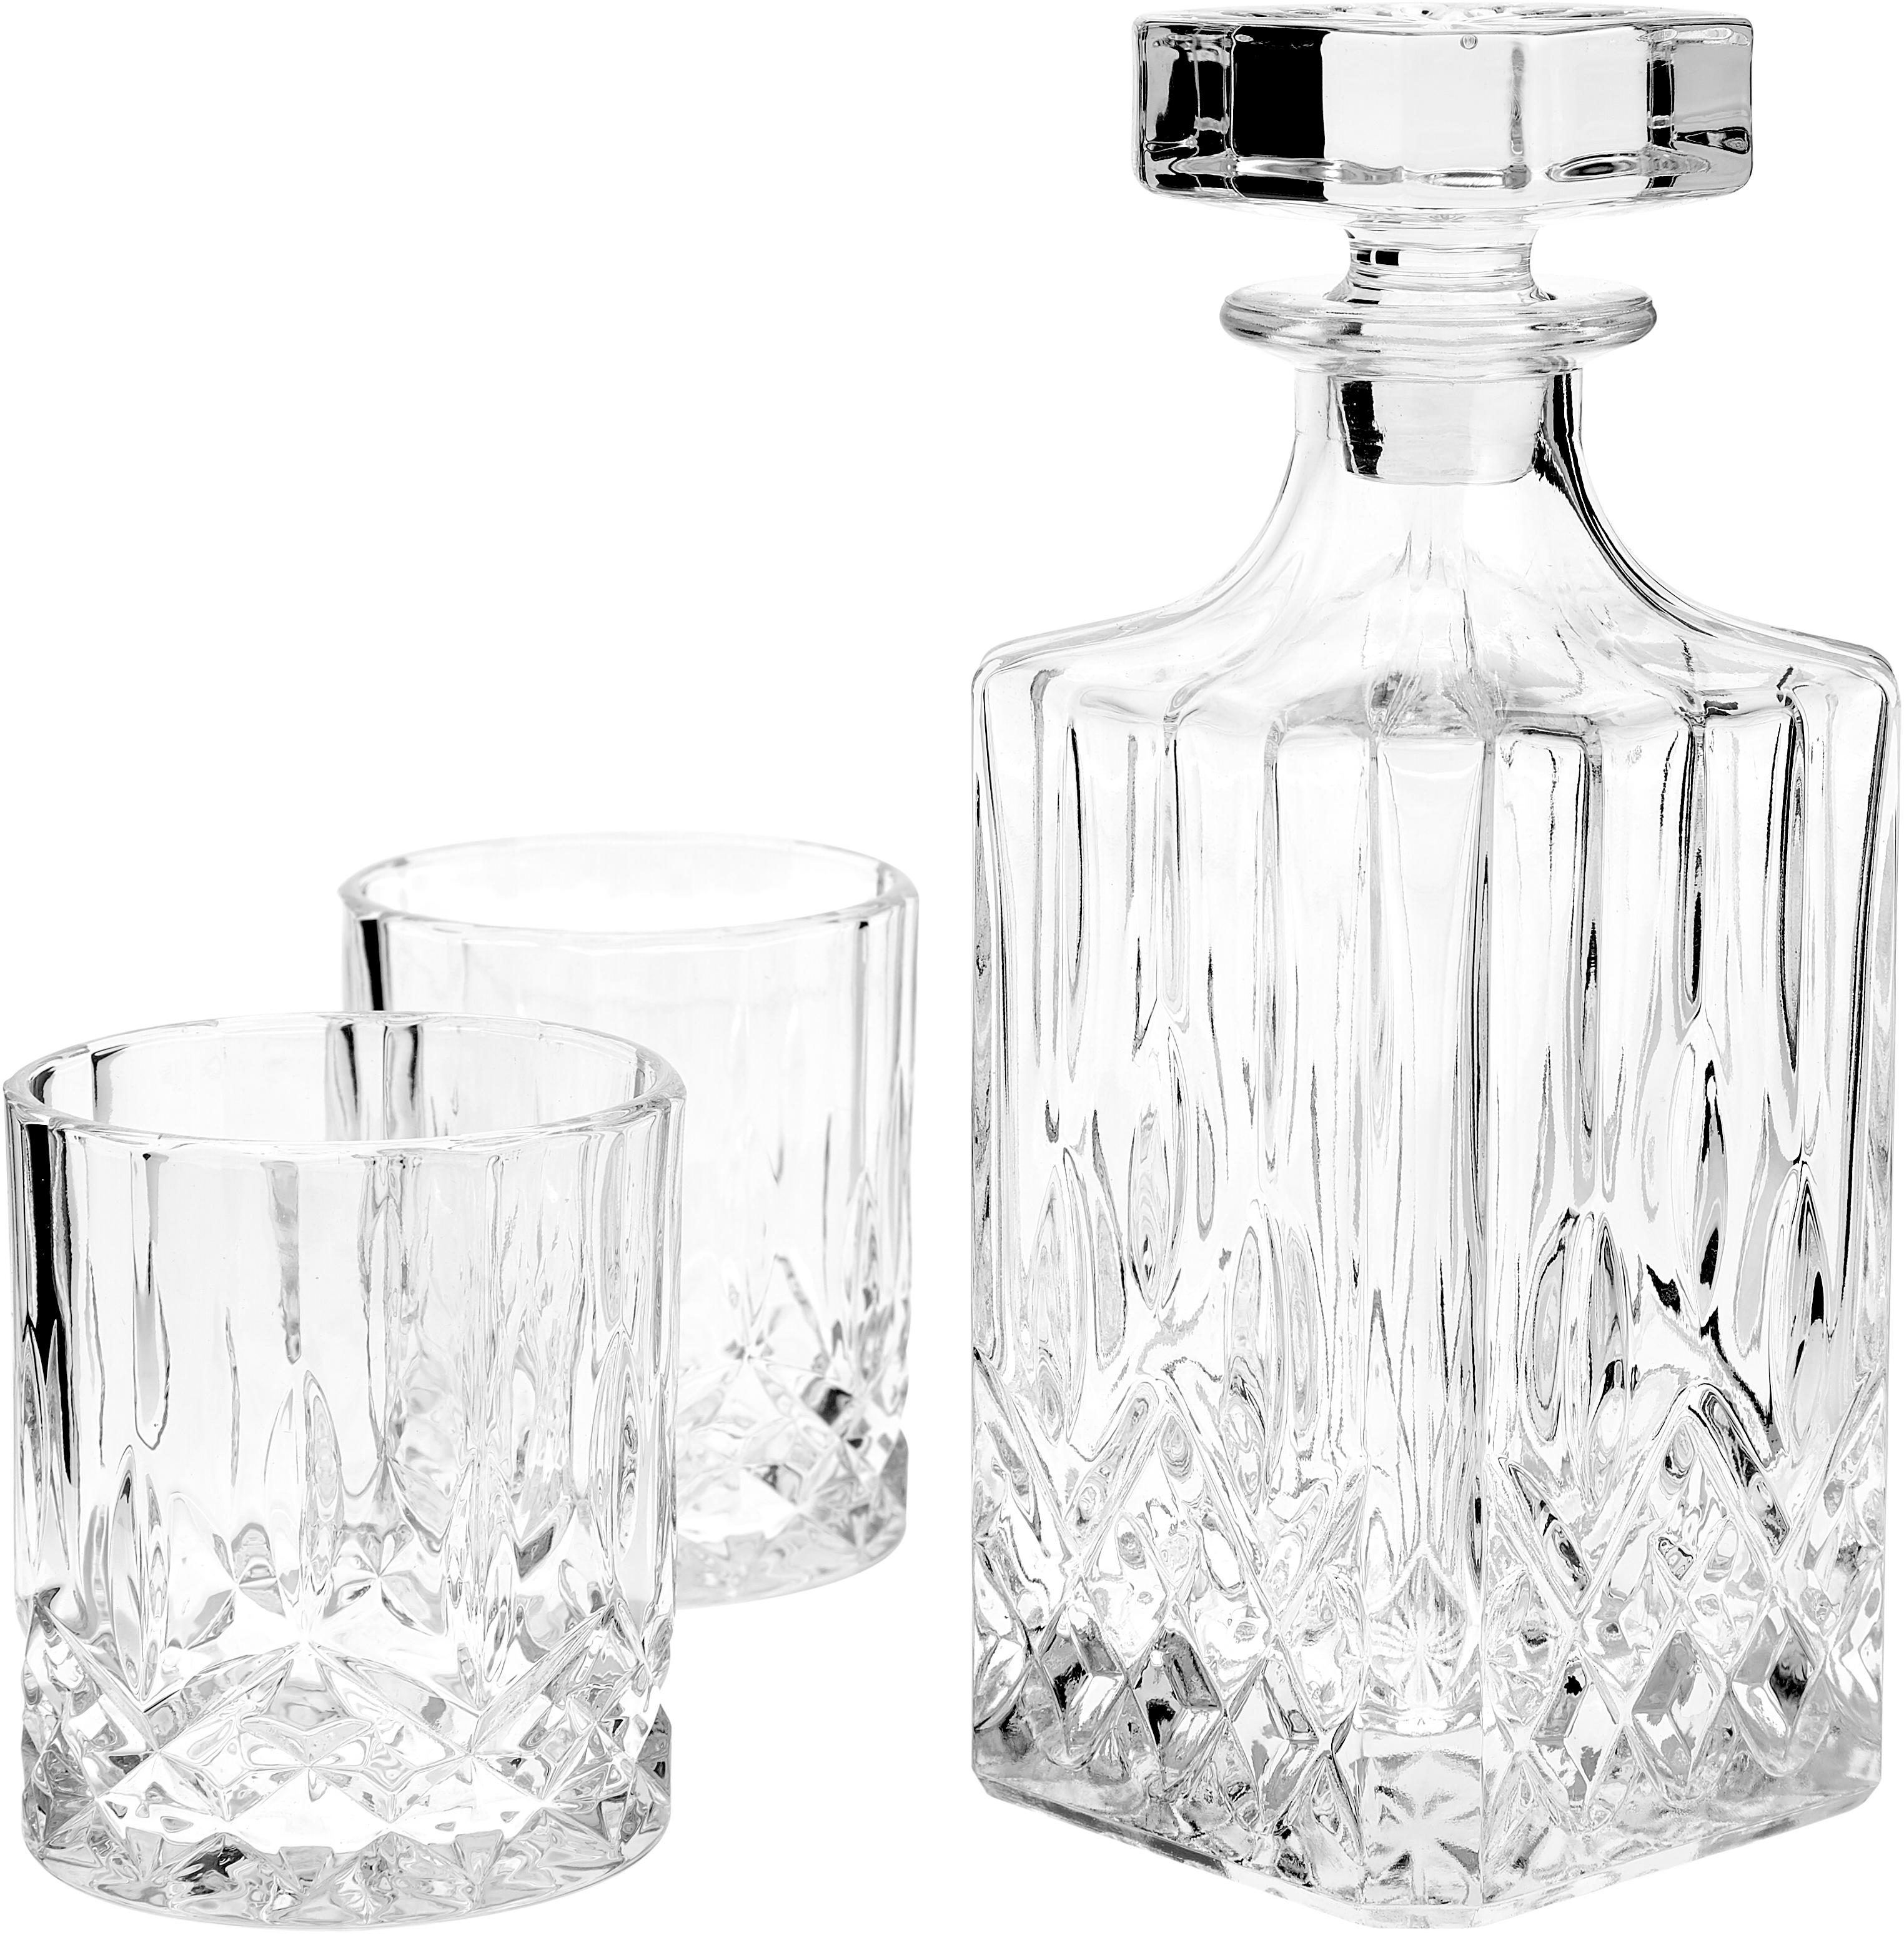 Whisky-Set George mit Kristallrelief, 3 tlg., Glas, Transparent, Ø 8 x H 22 cm